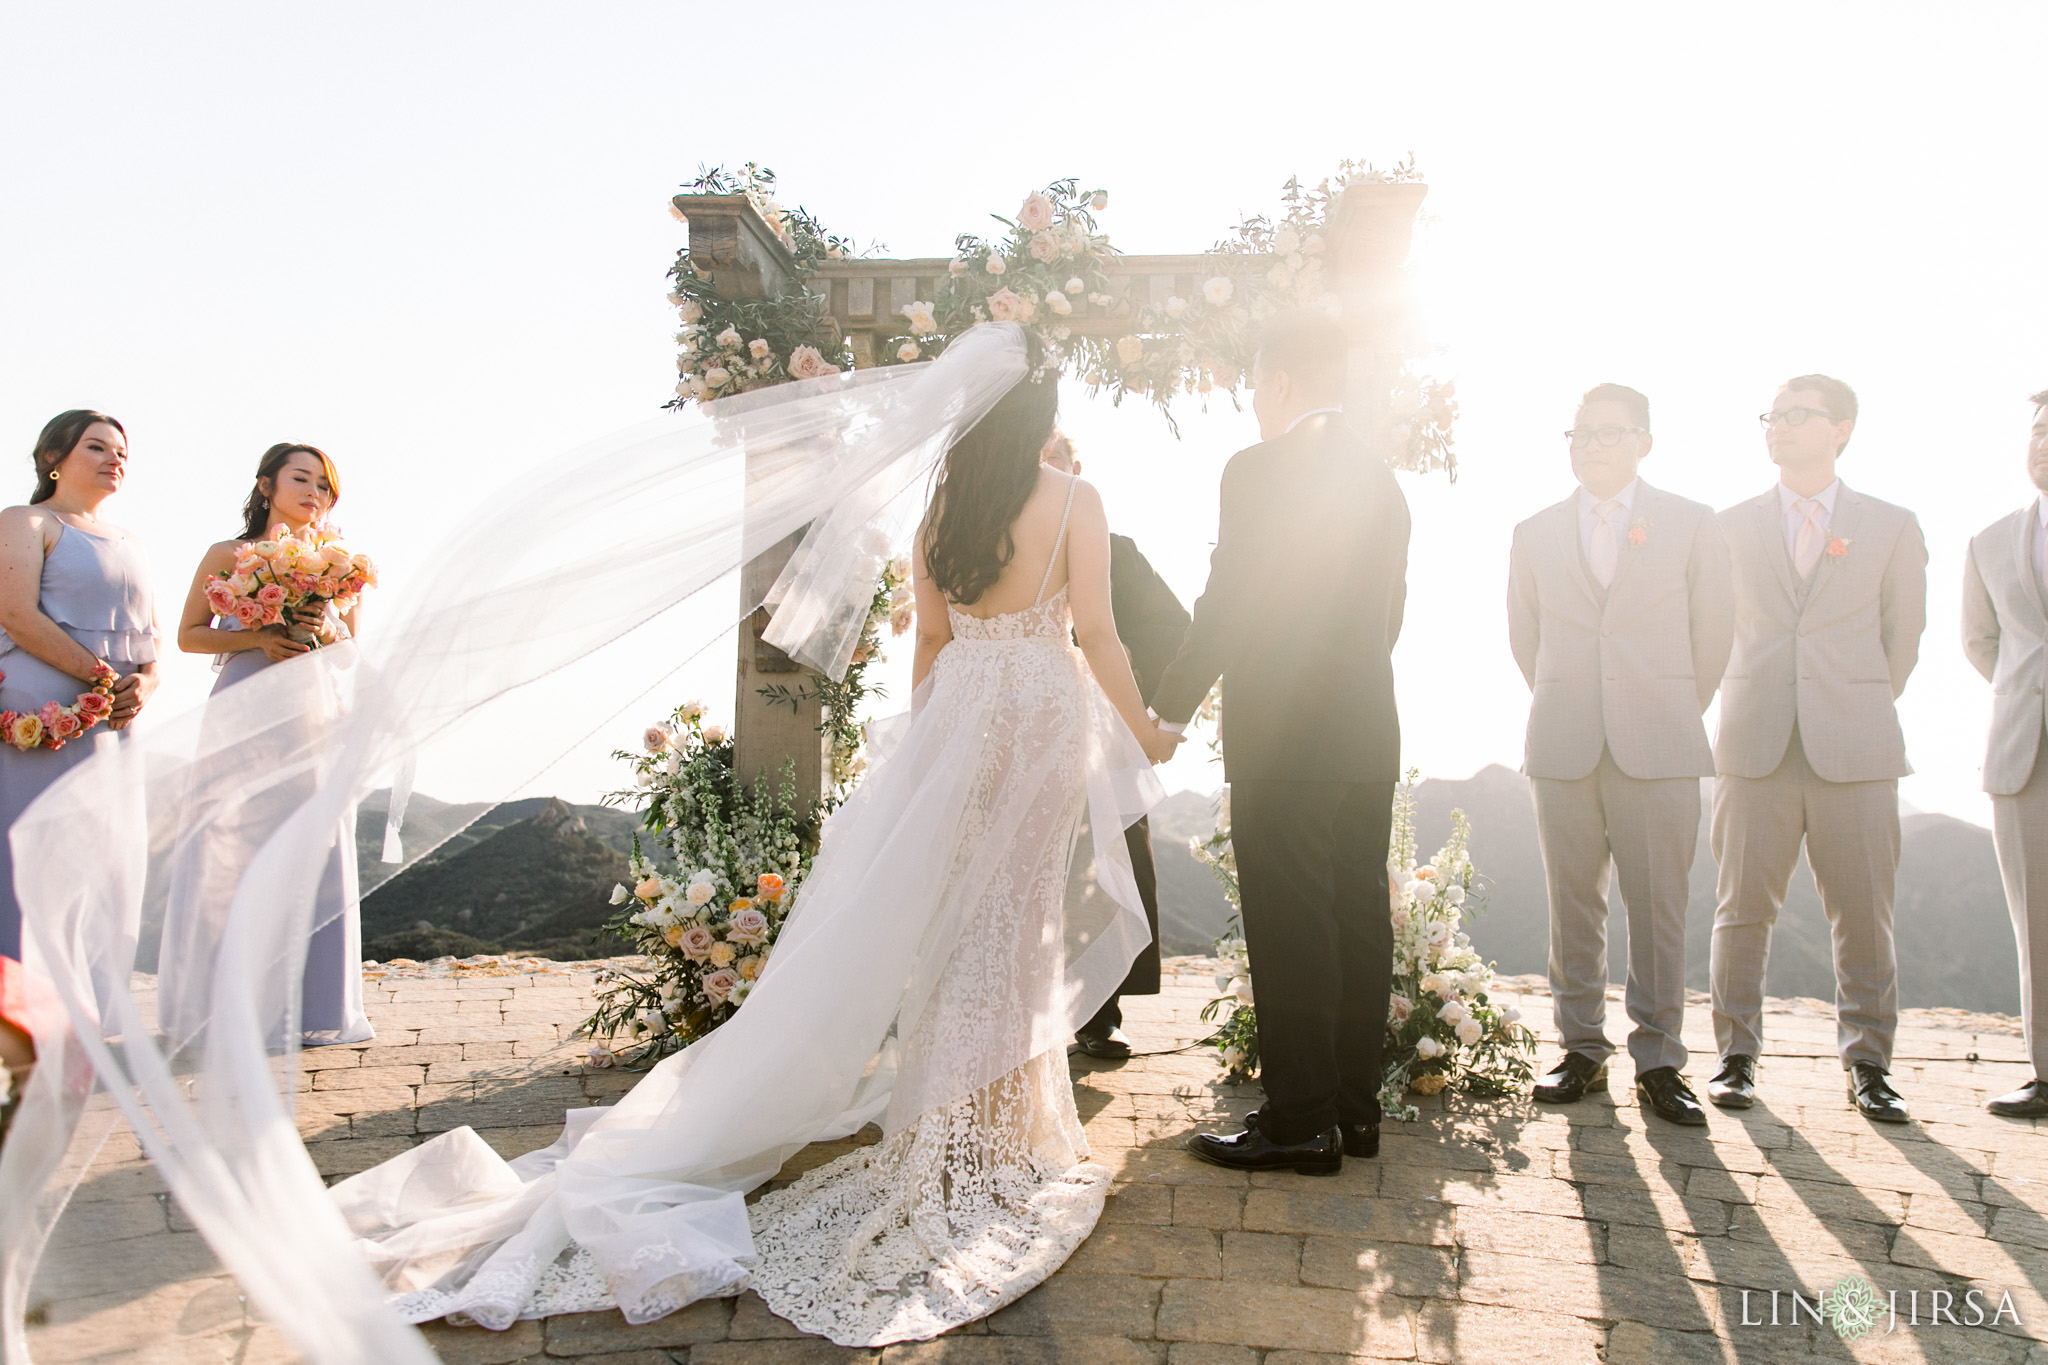 027 malibu rocky oaks filmic wedding photography